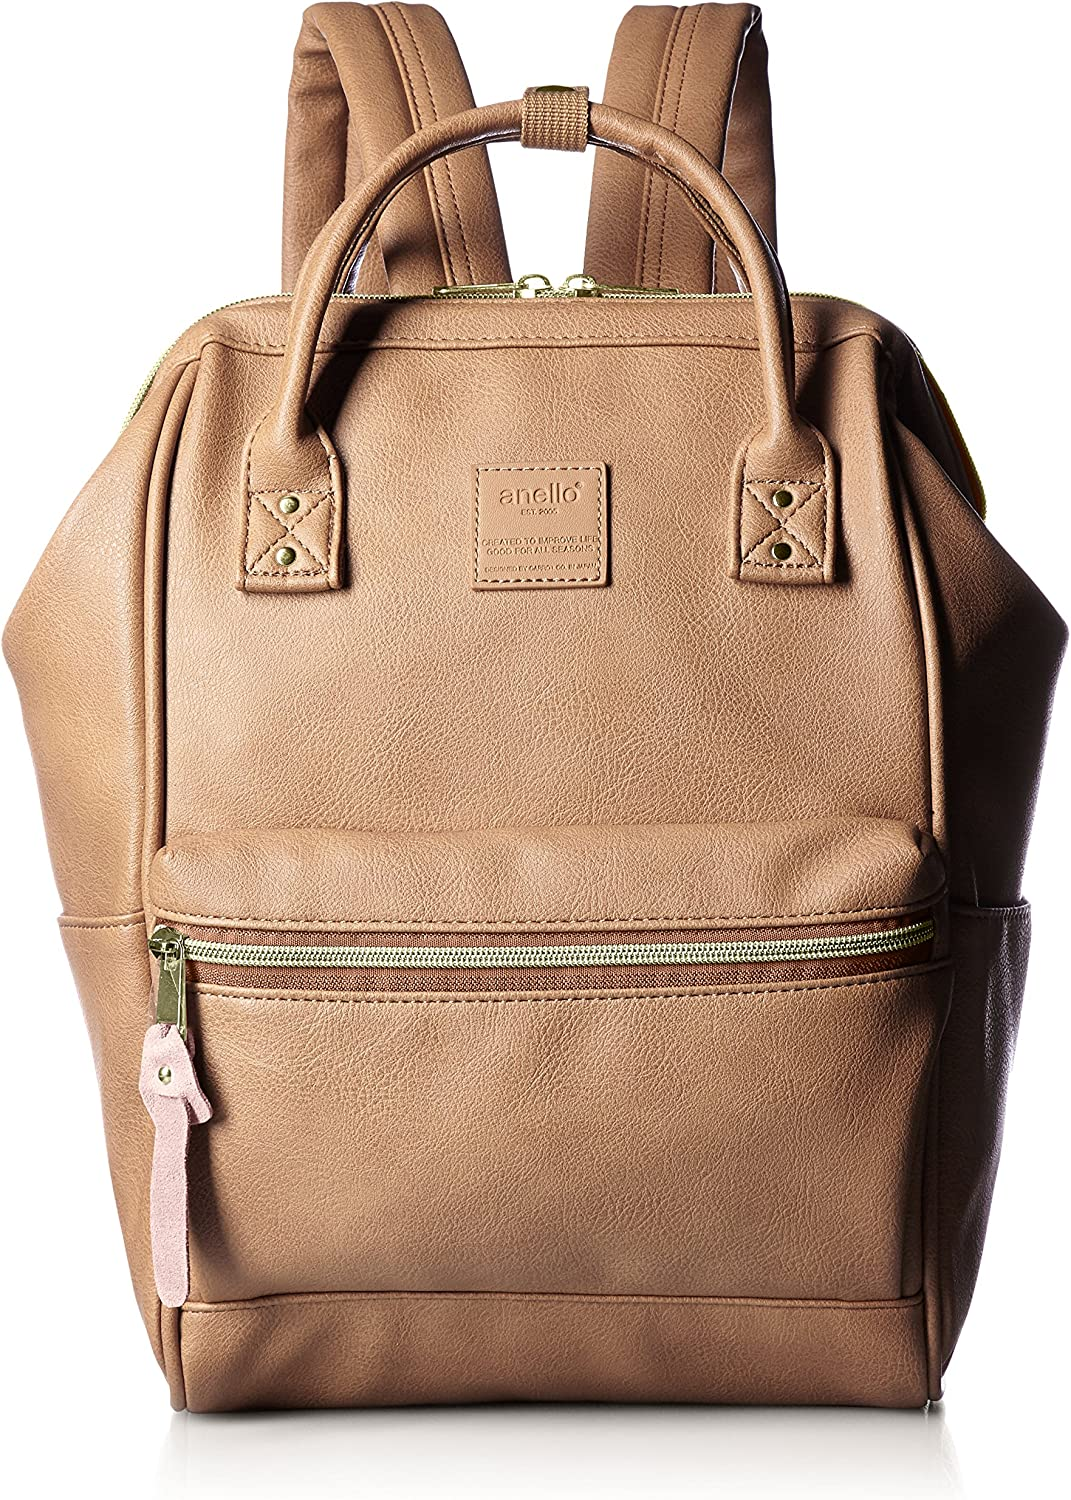 anello faux leather backpack'small AT-B1212 PI PI